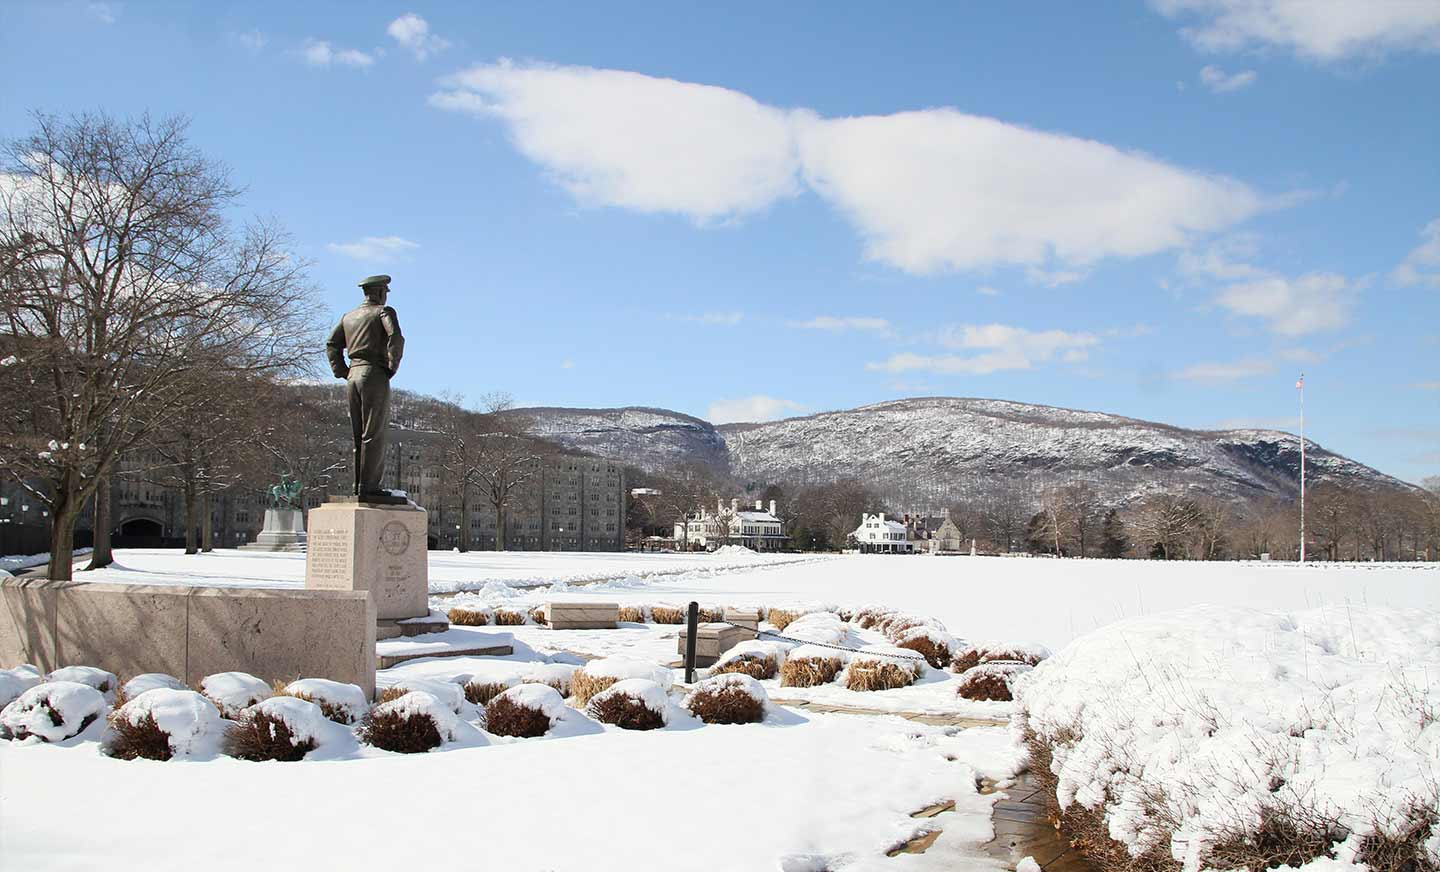 West Point Eisenhower Statue in the Winter